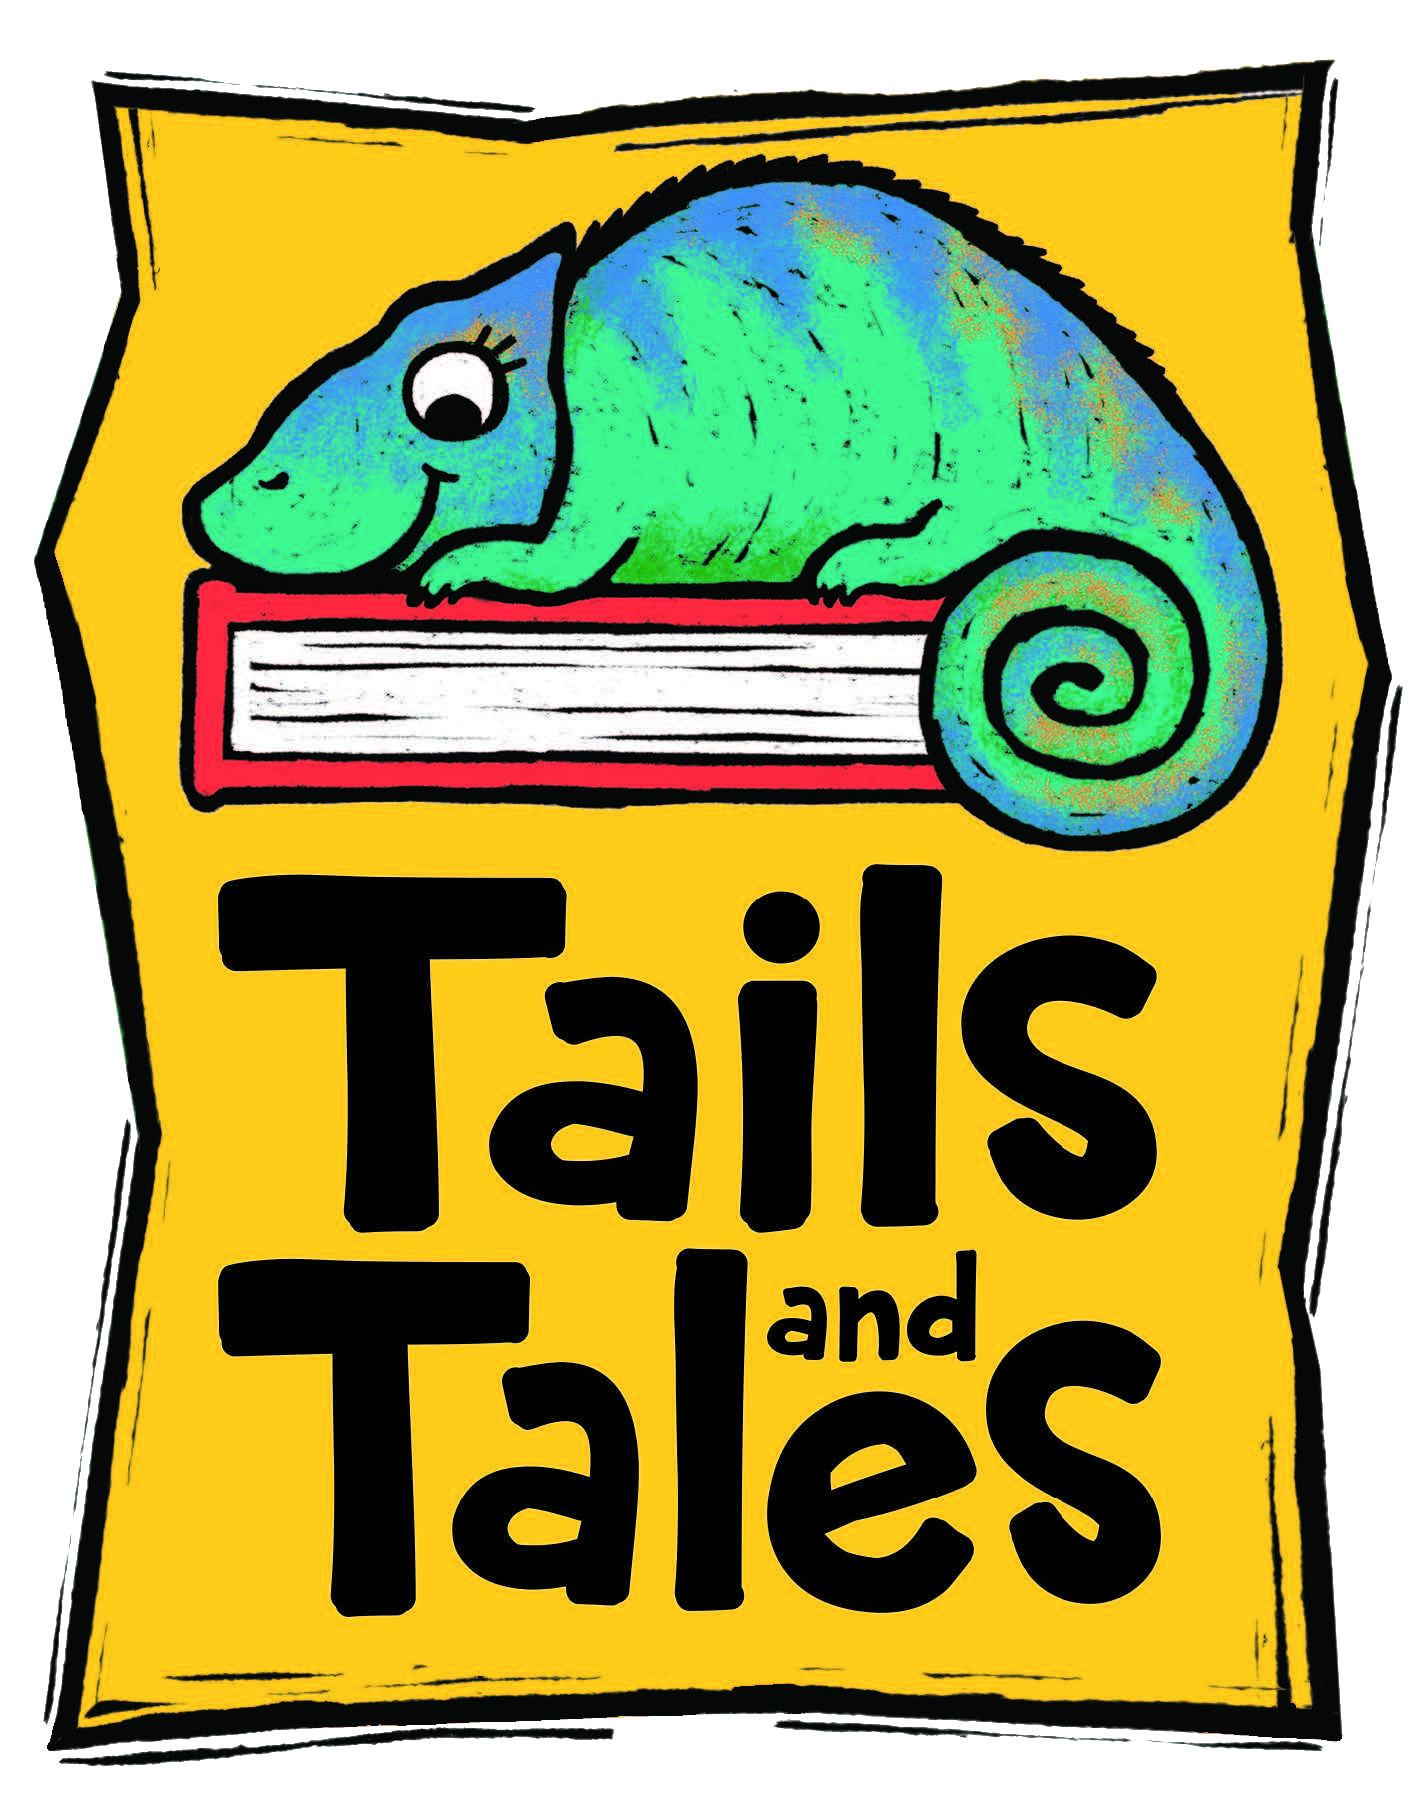 CSLP Tails and Tales Summer Reading 2021 Kids slogan image